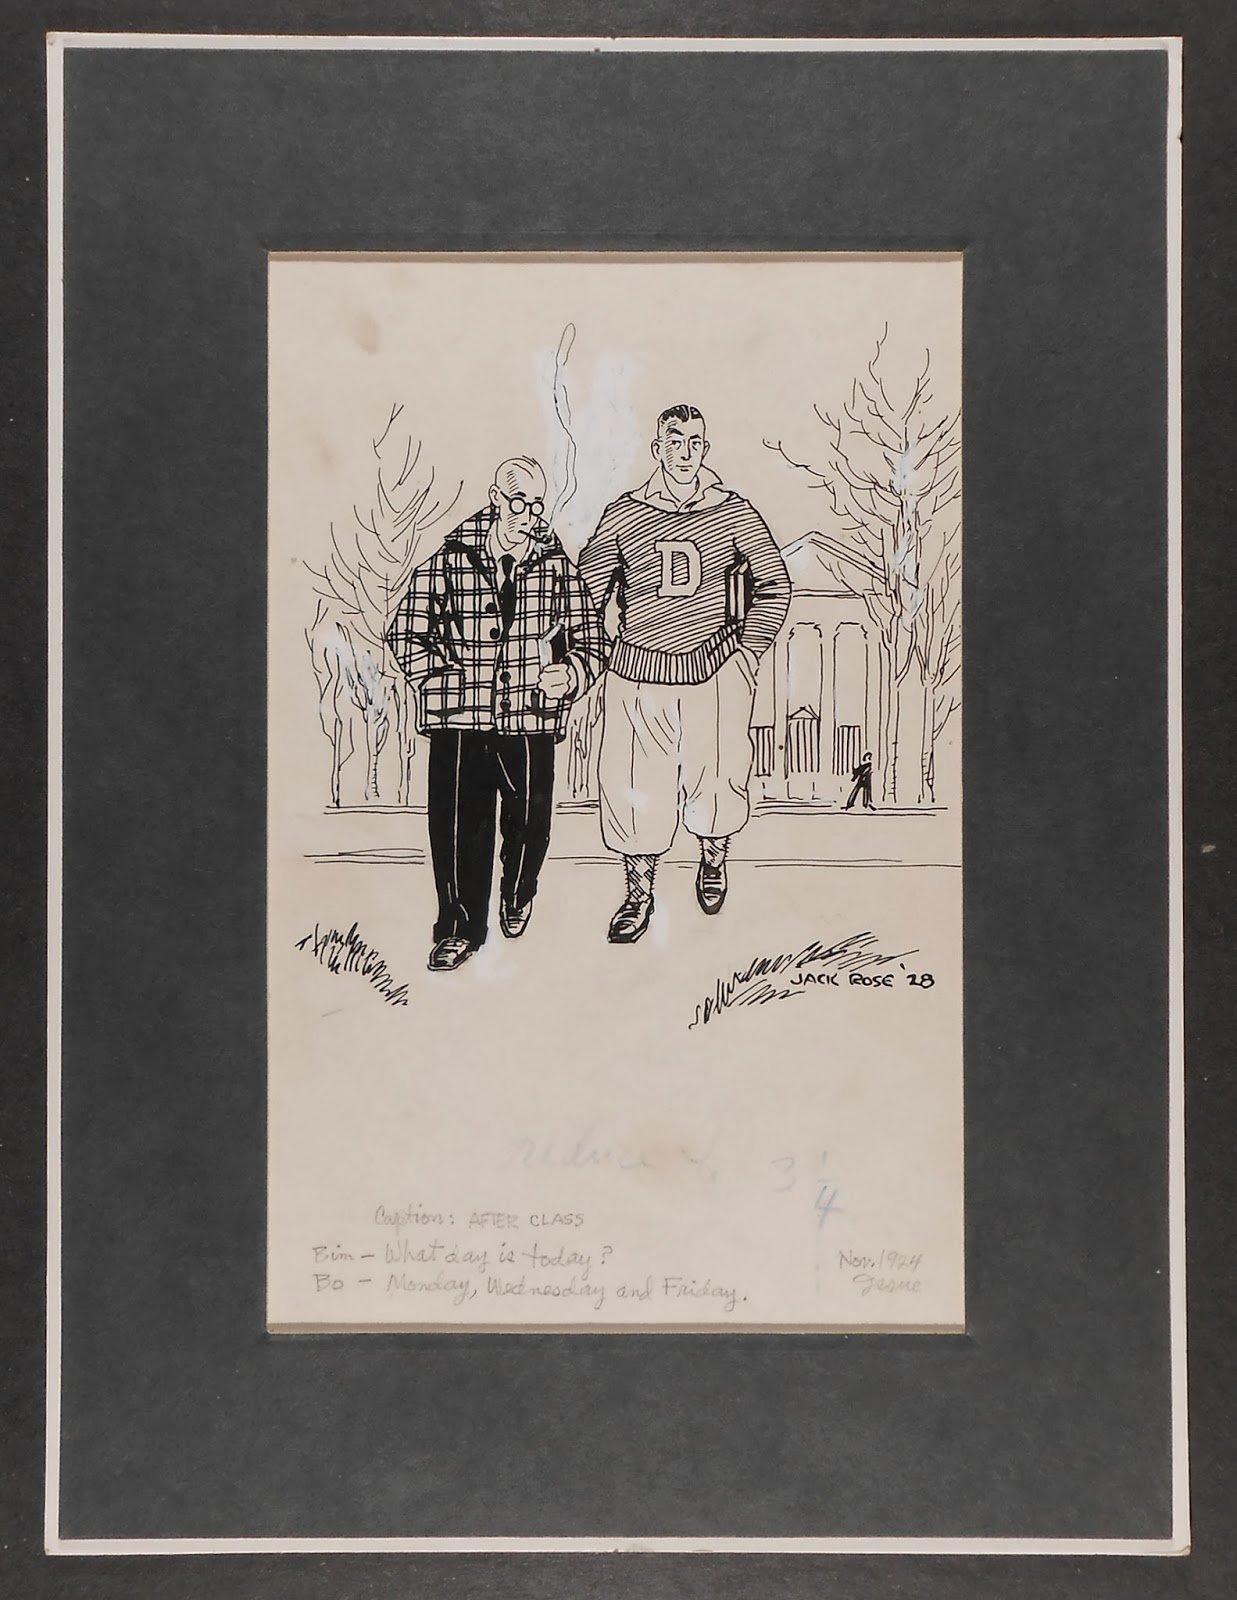 A cartoon of a smoking man walking outdoors with a second man in a Dartmouth sweater.